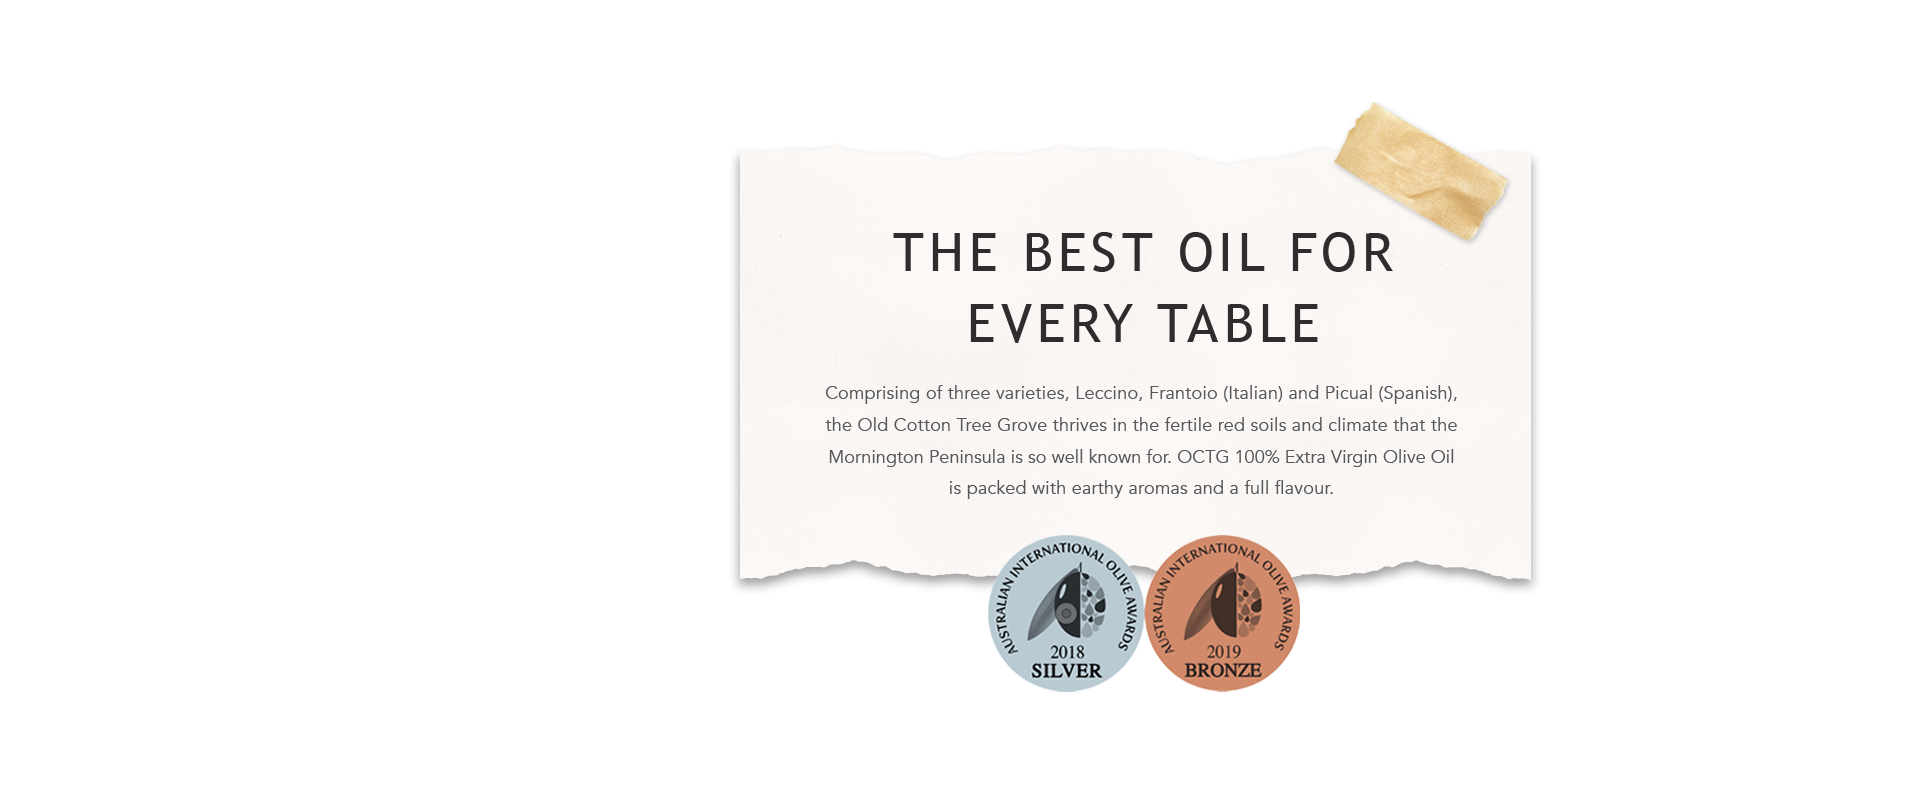 The Best Oil for Every Table